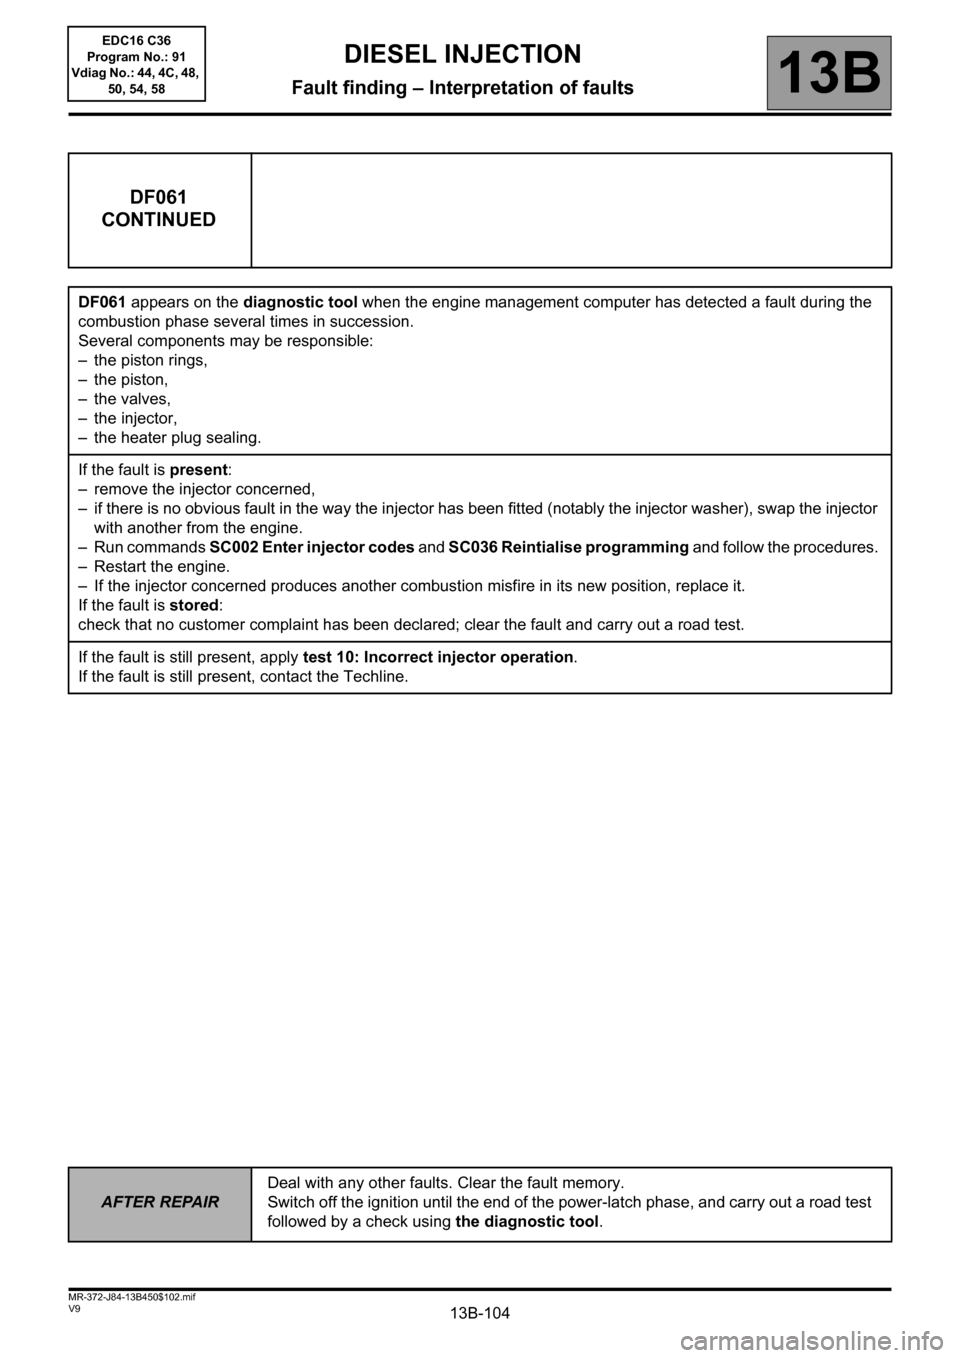 RENAULT SCENIC 2011 J95 / 3.G Engine And Peripherals EDC16C36 Workshop Manual, Page 104